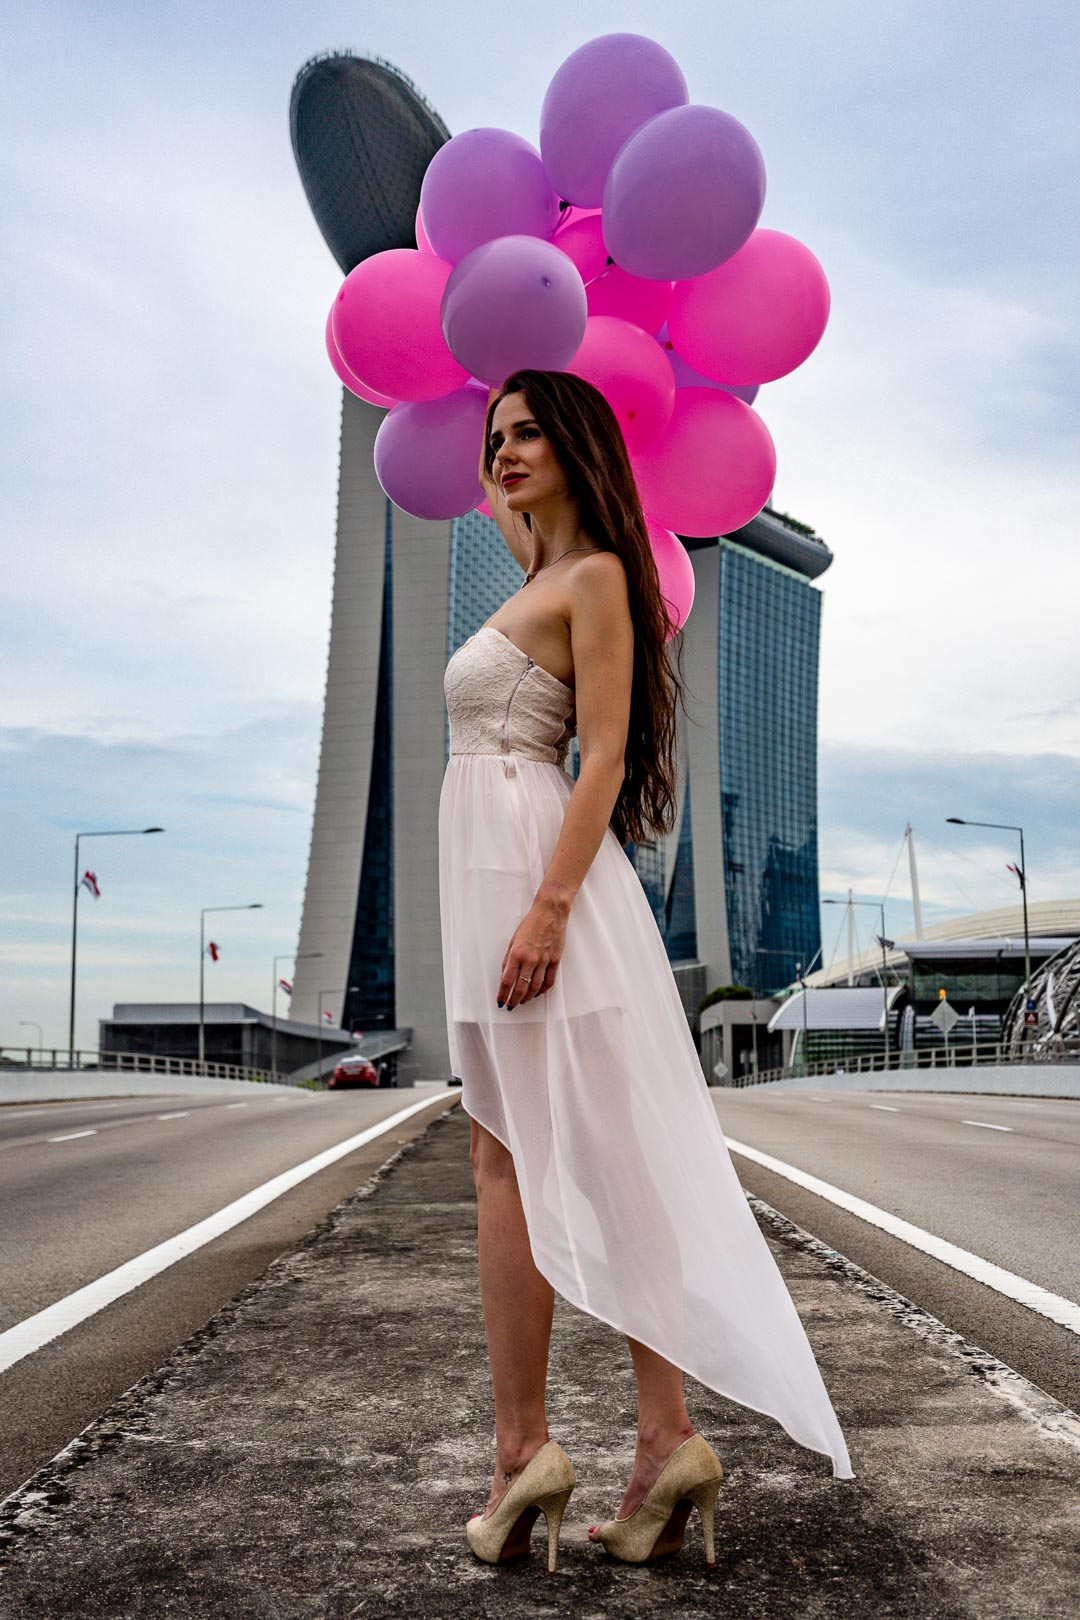 Female model poses with colorful balloons in front of Marina Bay Sands in Singapore